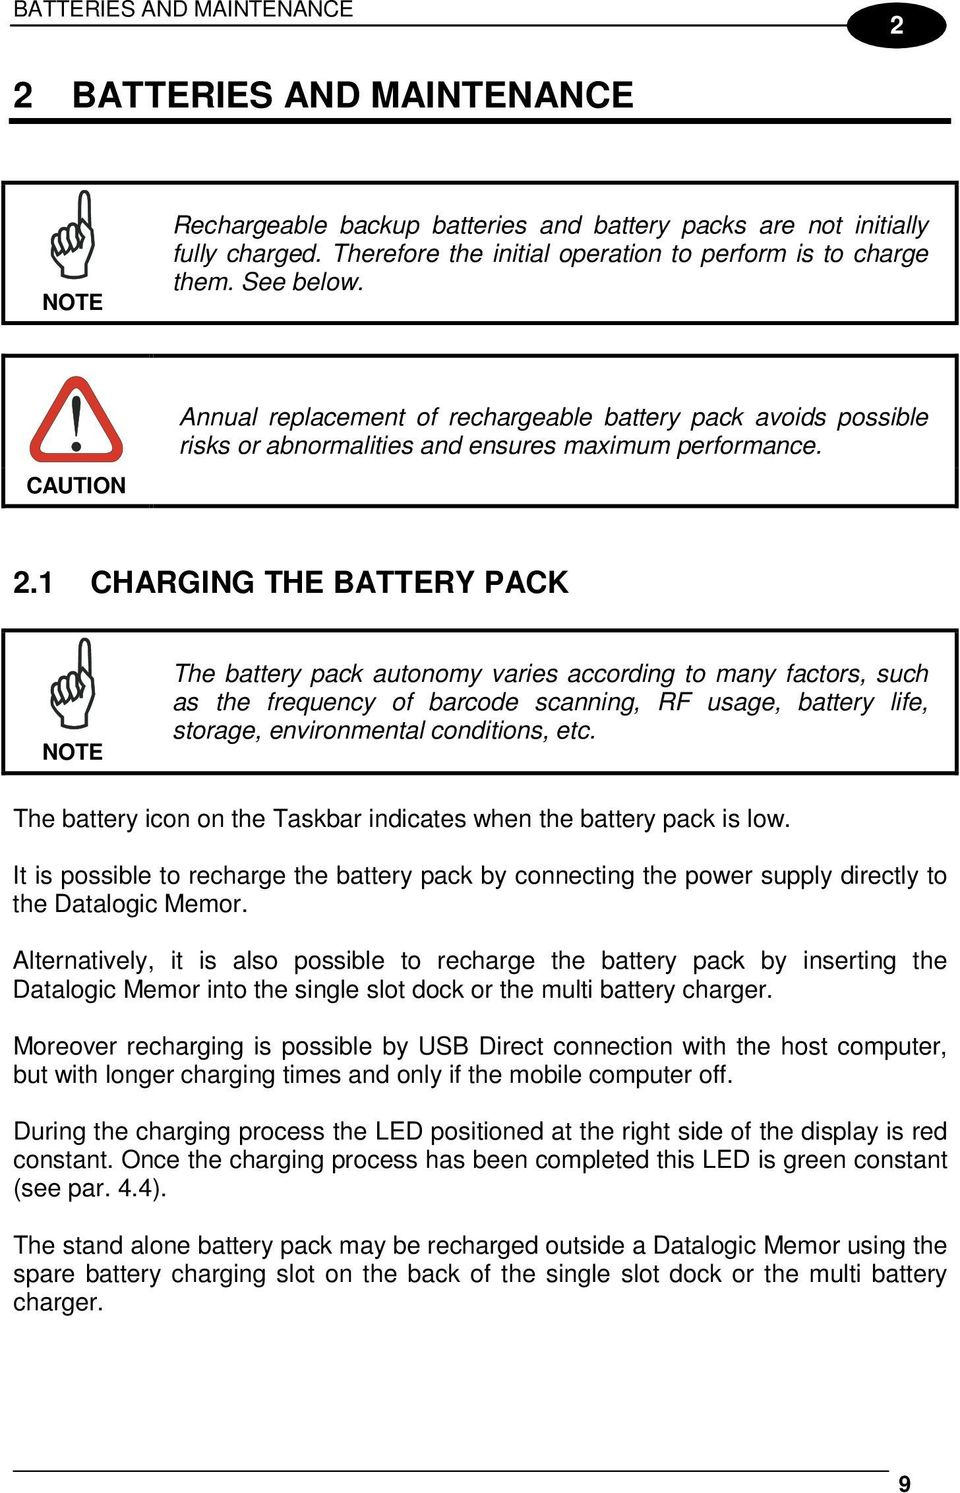 2.1 CHARGING THE BATTERY PACK NOTE The battery pack autonomy varies according to many factors, such as the frequency of barcode scanning, RF usage, battery life, storage, environmental conditions,